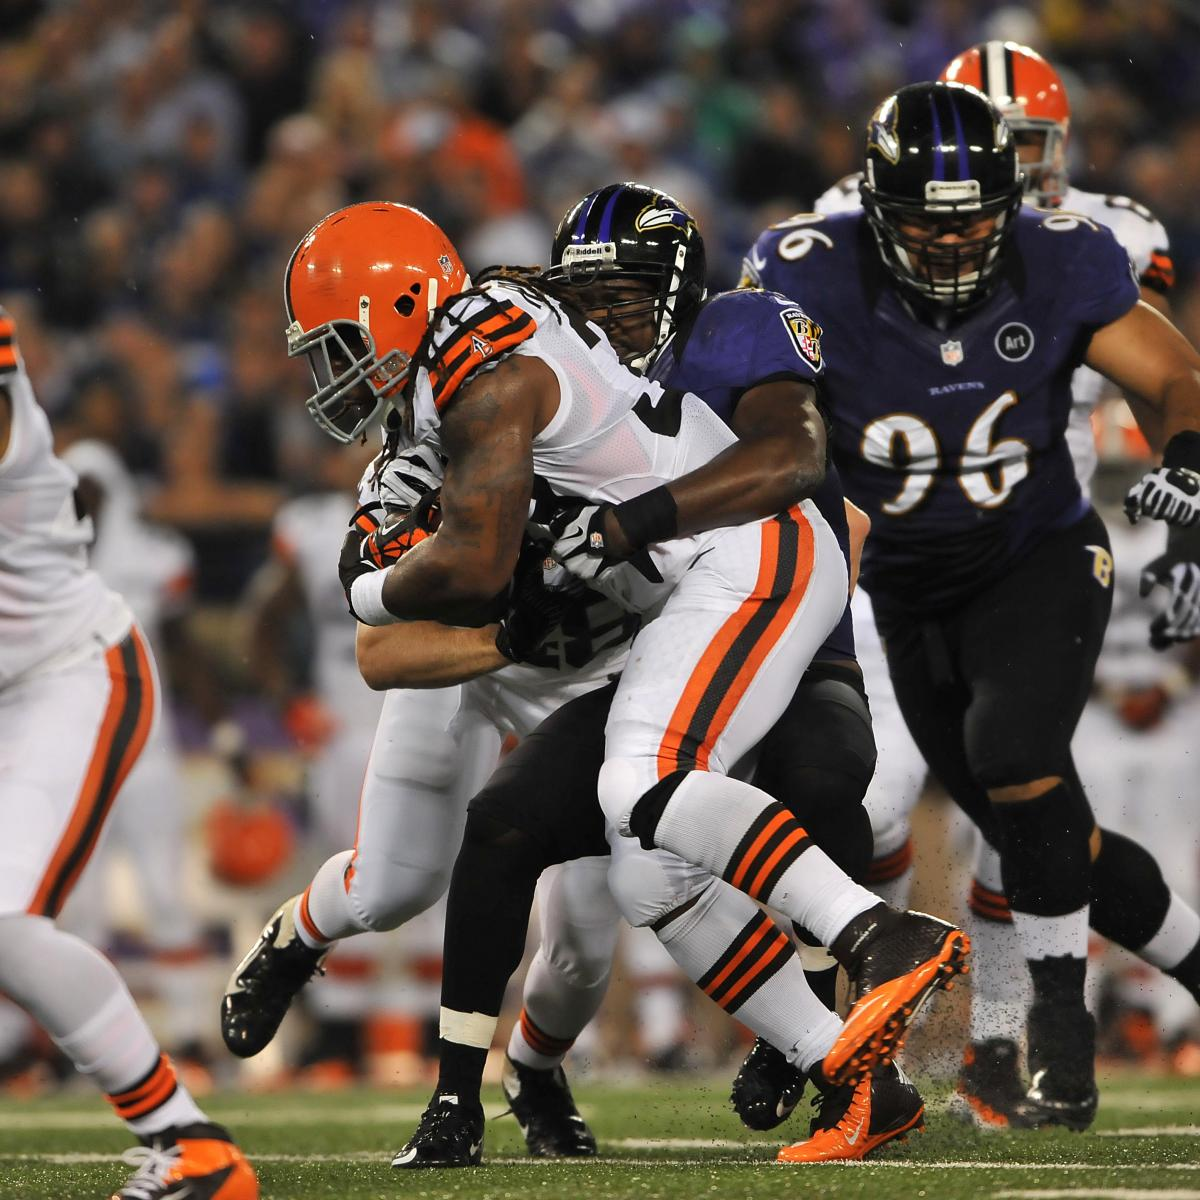 San Diego Chargers Game Live Stream: Ravens Vs. Browns: TV Schedule, Live Stream, Spread, Radio